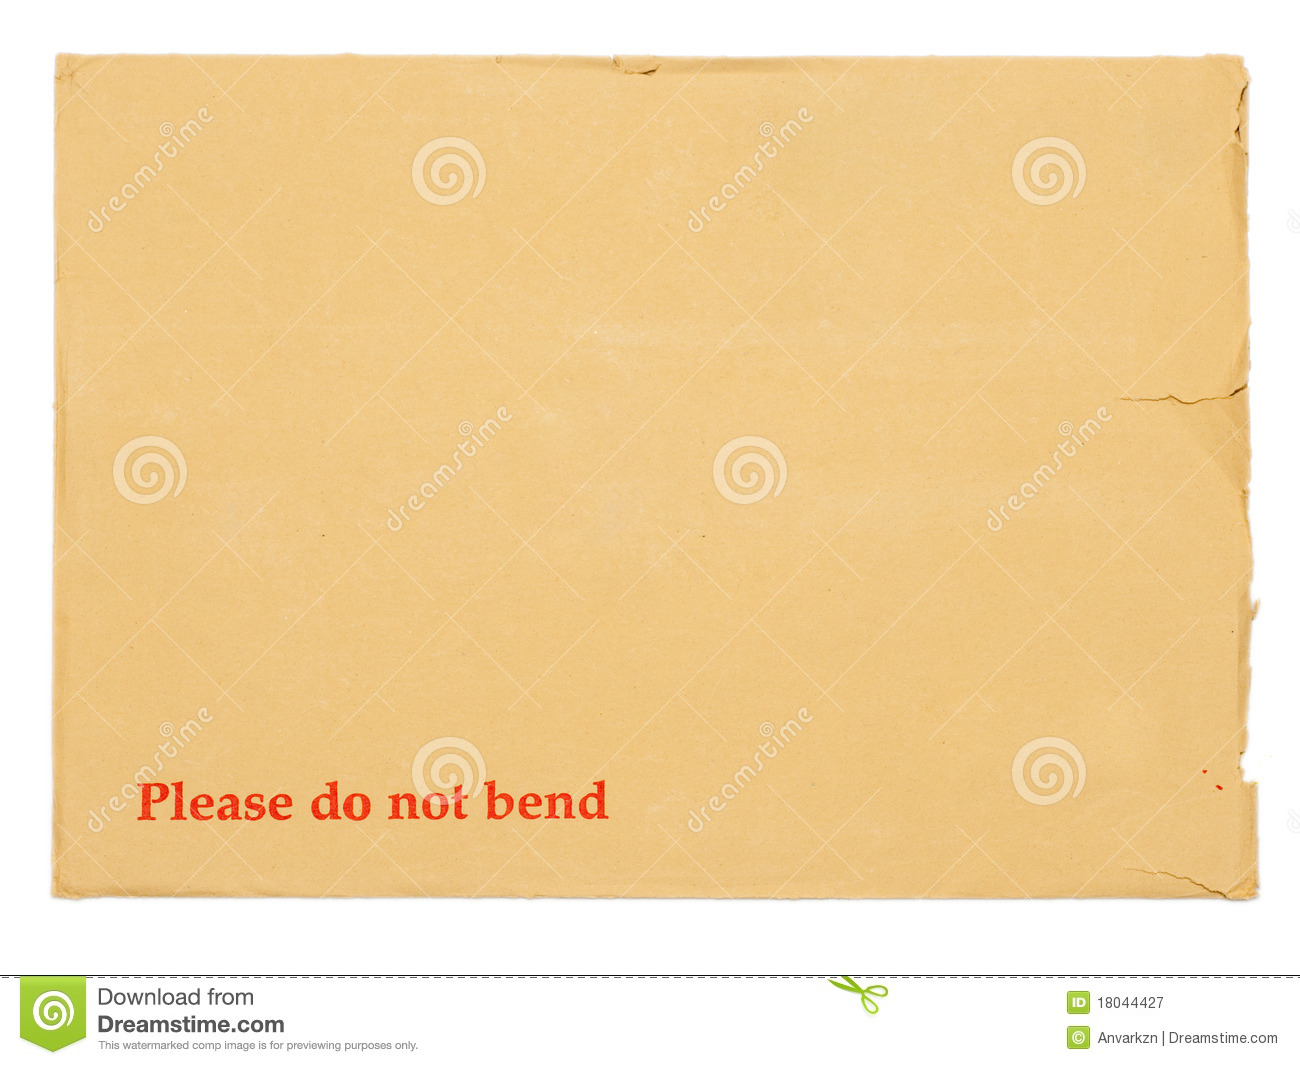 Blank Envelope For Important Documents  Royalty Free Stock Photography